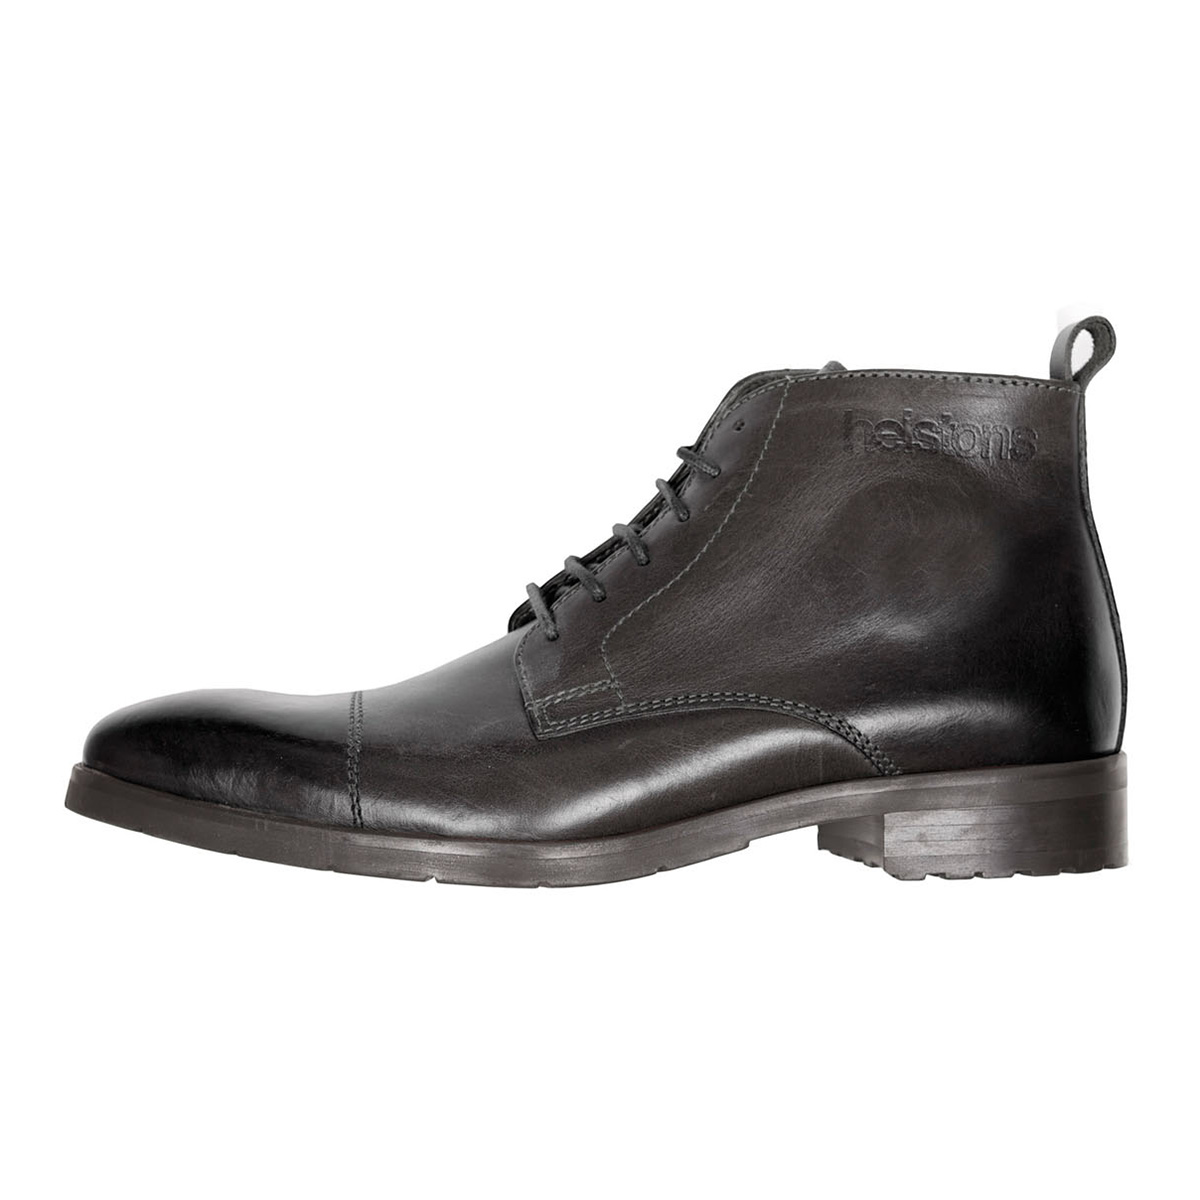 Helstons Heritage Leather Boot Black